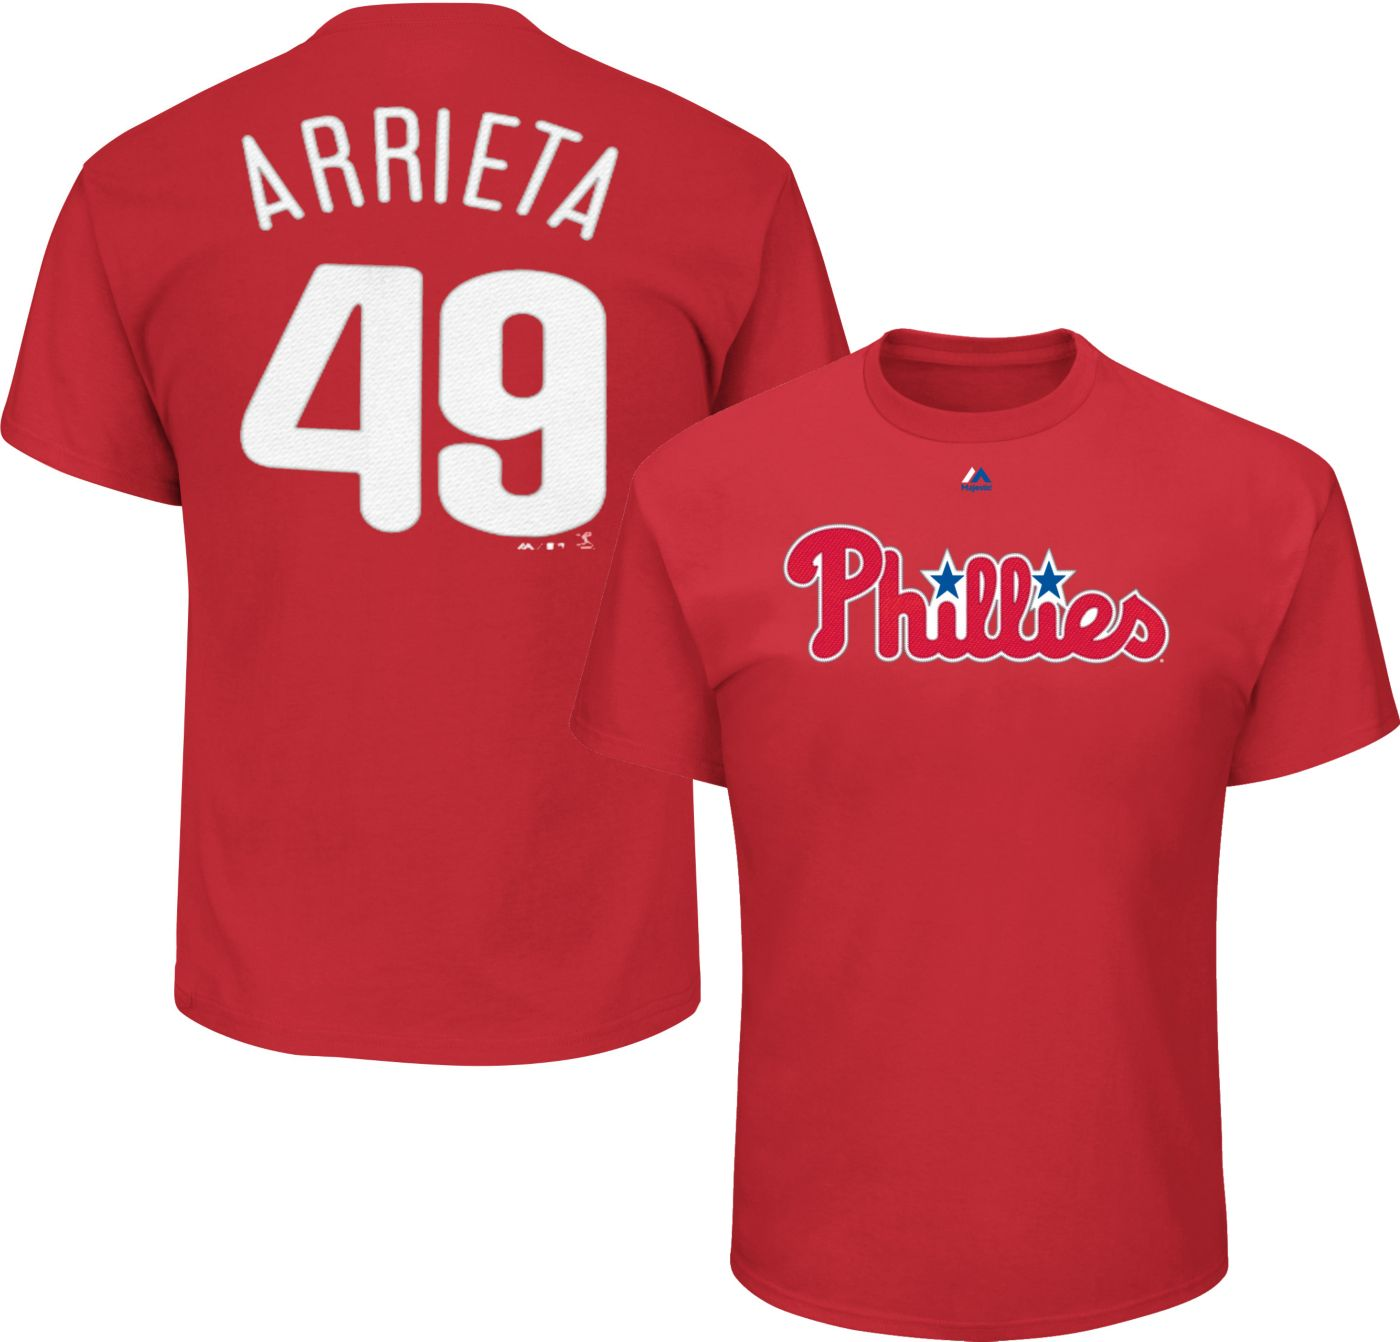 Majestic Men's Philadelphia Phillies Jake Arrieta #49 Red T-Shirt